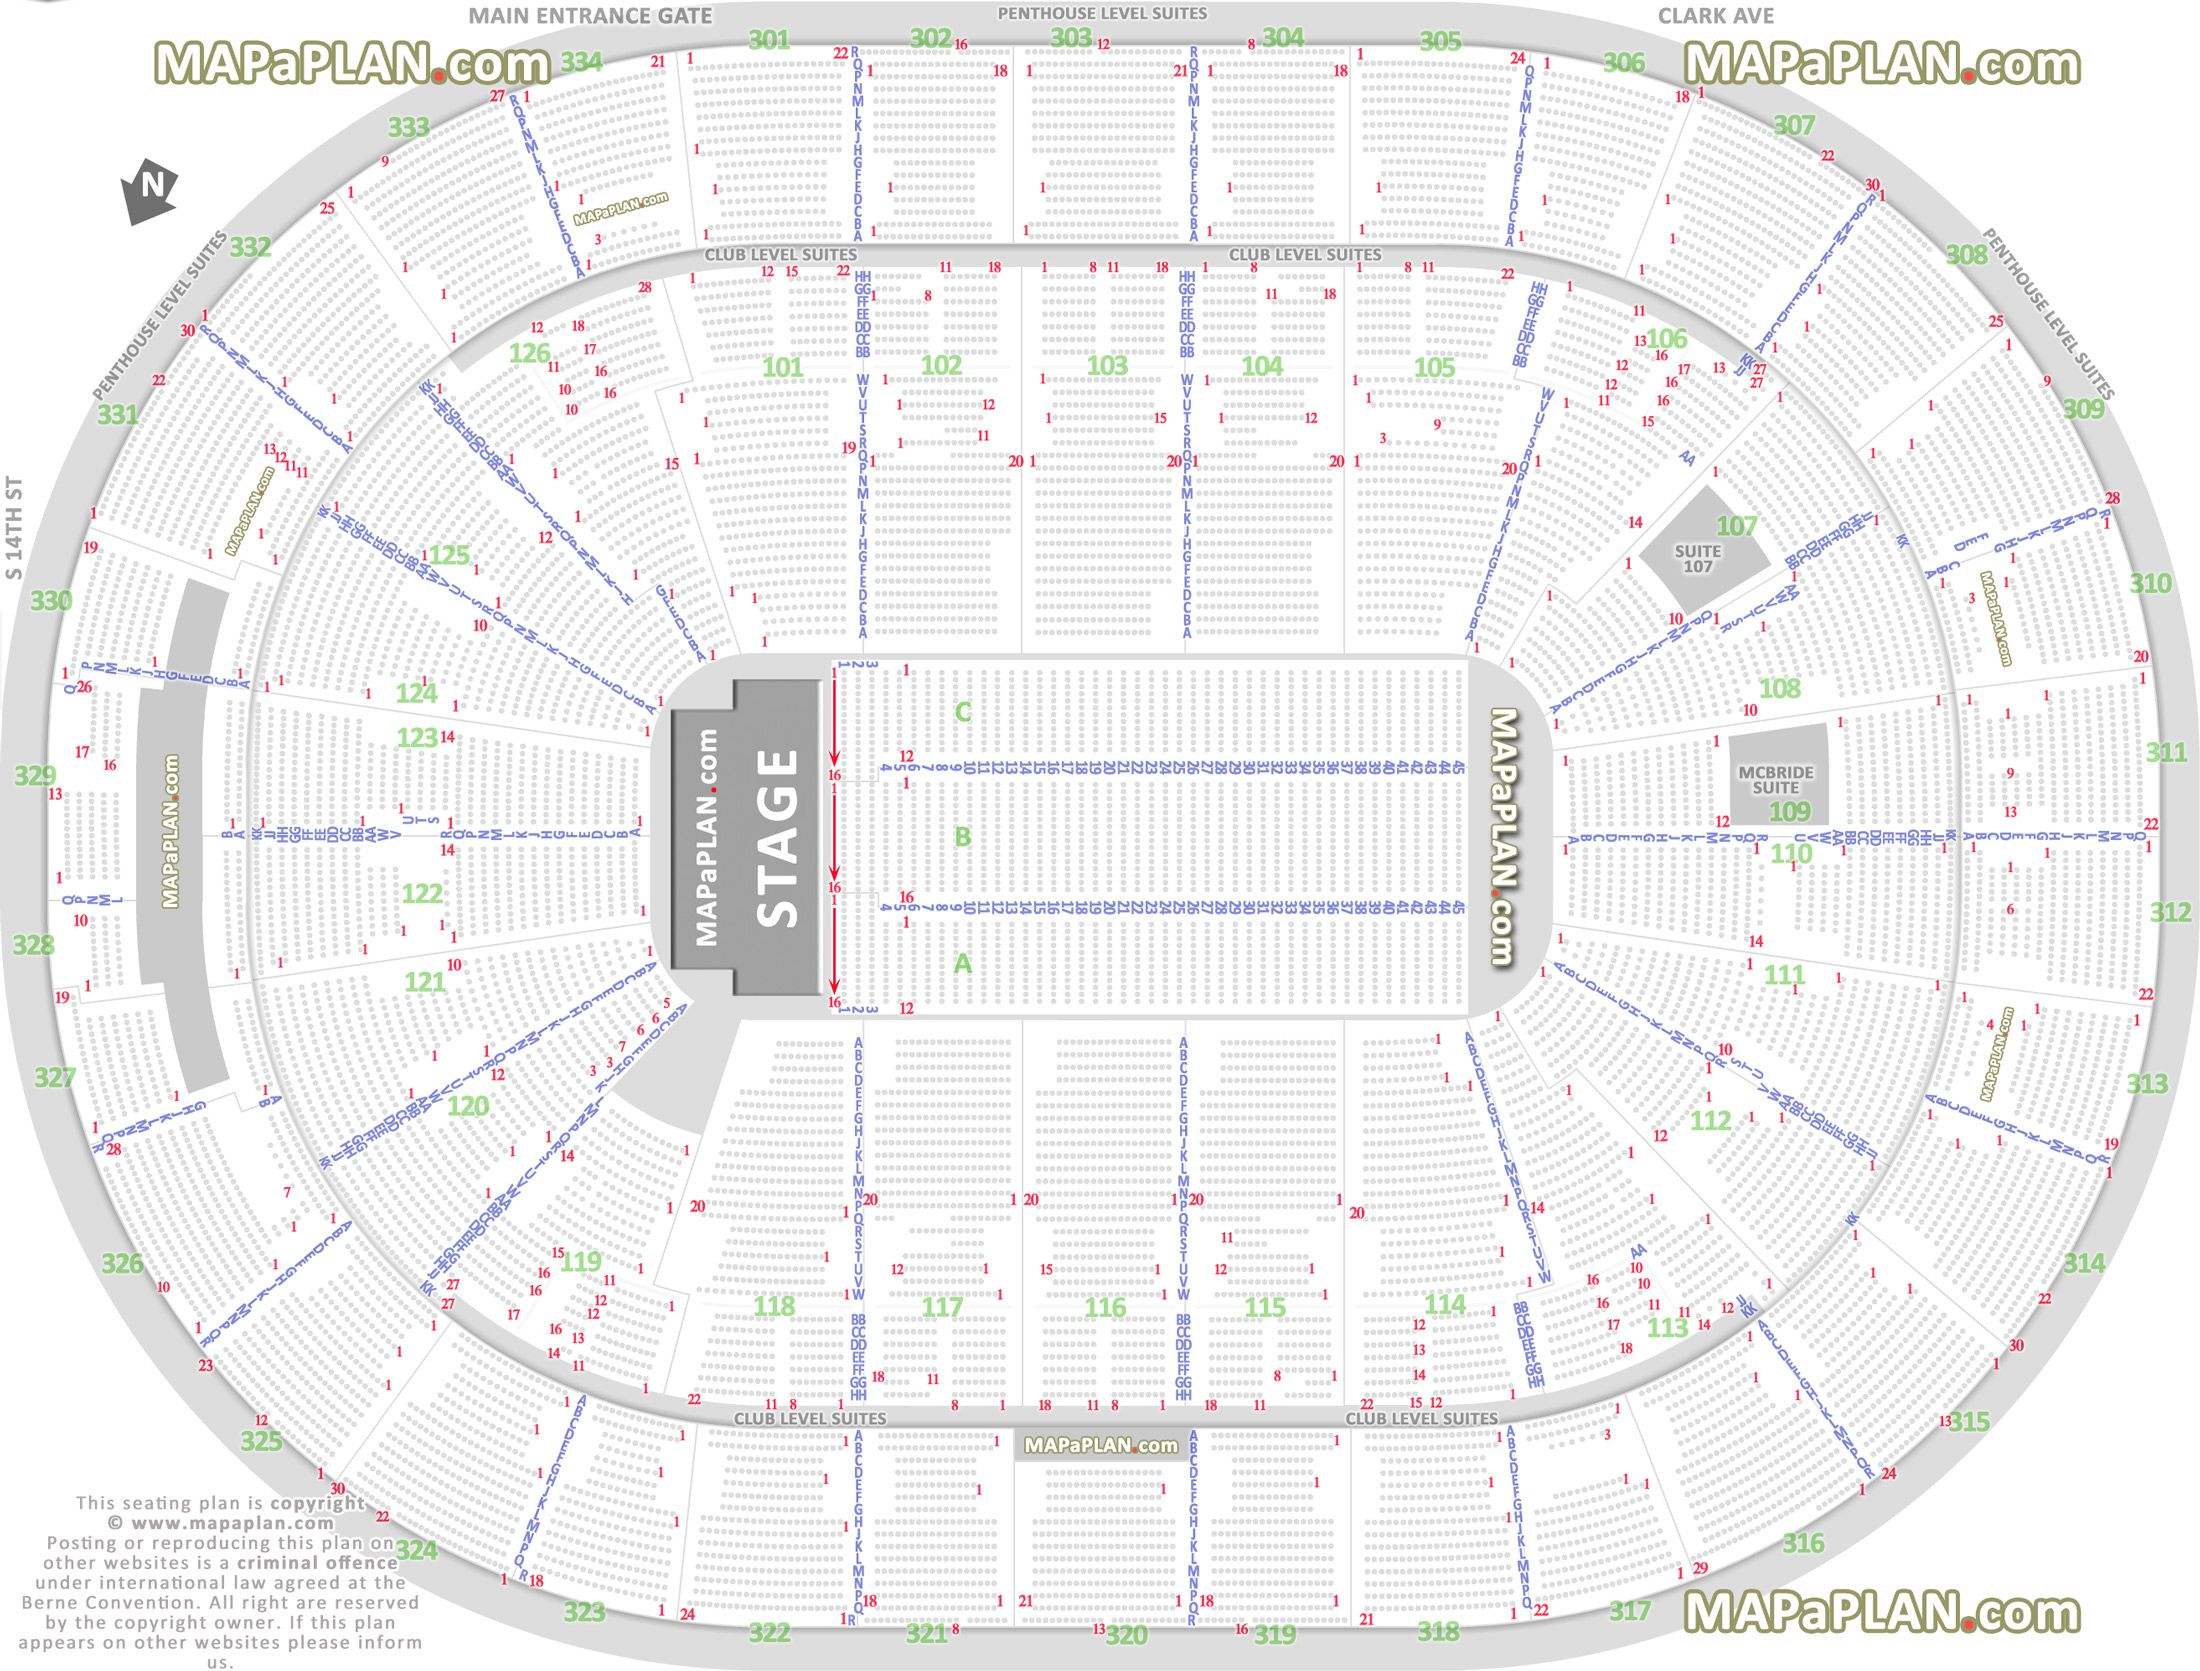 Detailed Seat Row Numbers End Stage Concert Sections Floor Plan Map Arena Plaza Club Mezzanine Level Layout St Loui Seating Charts Blue Seating Verizon Center